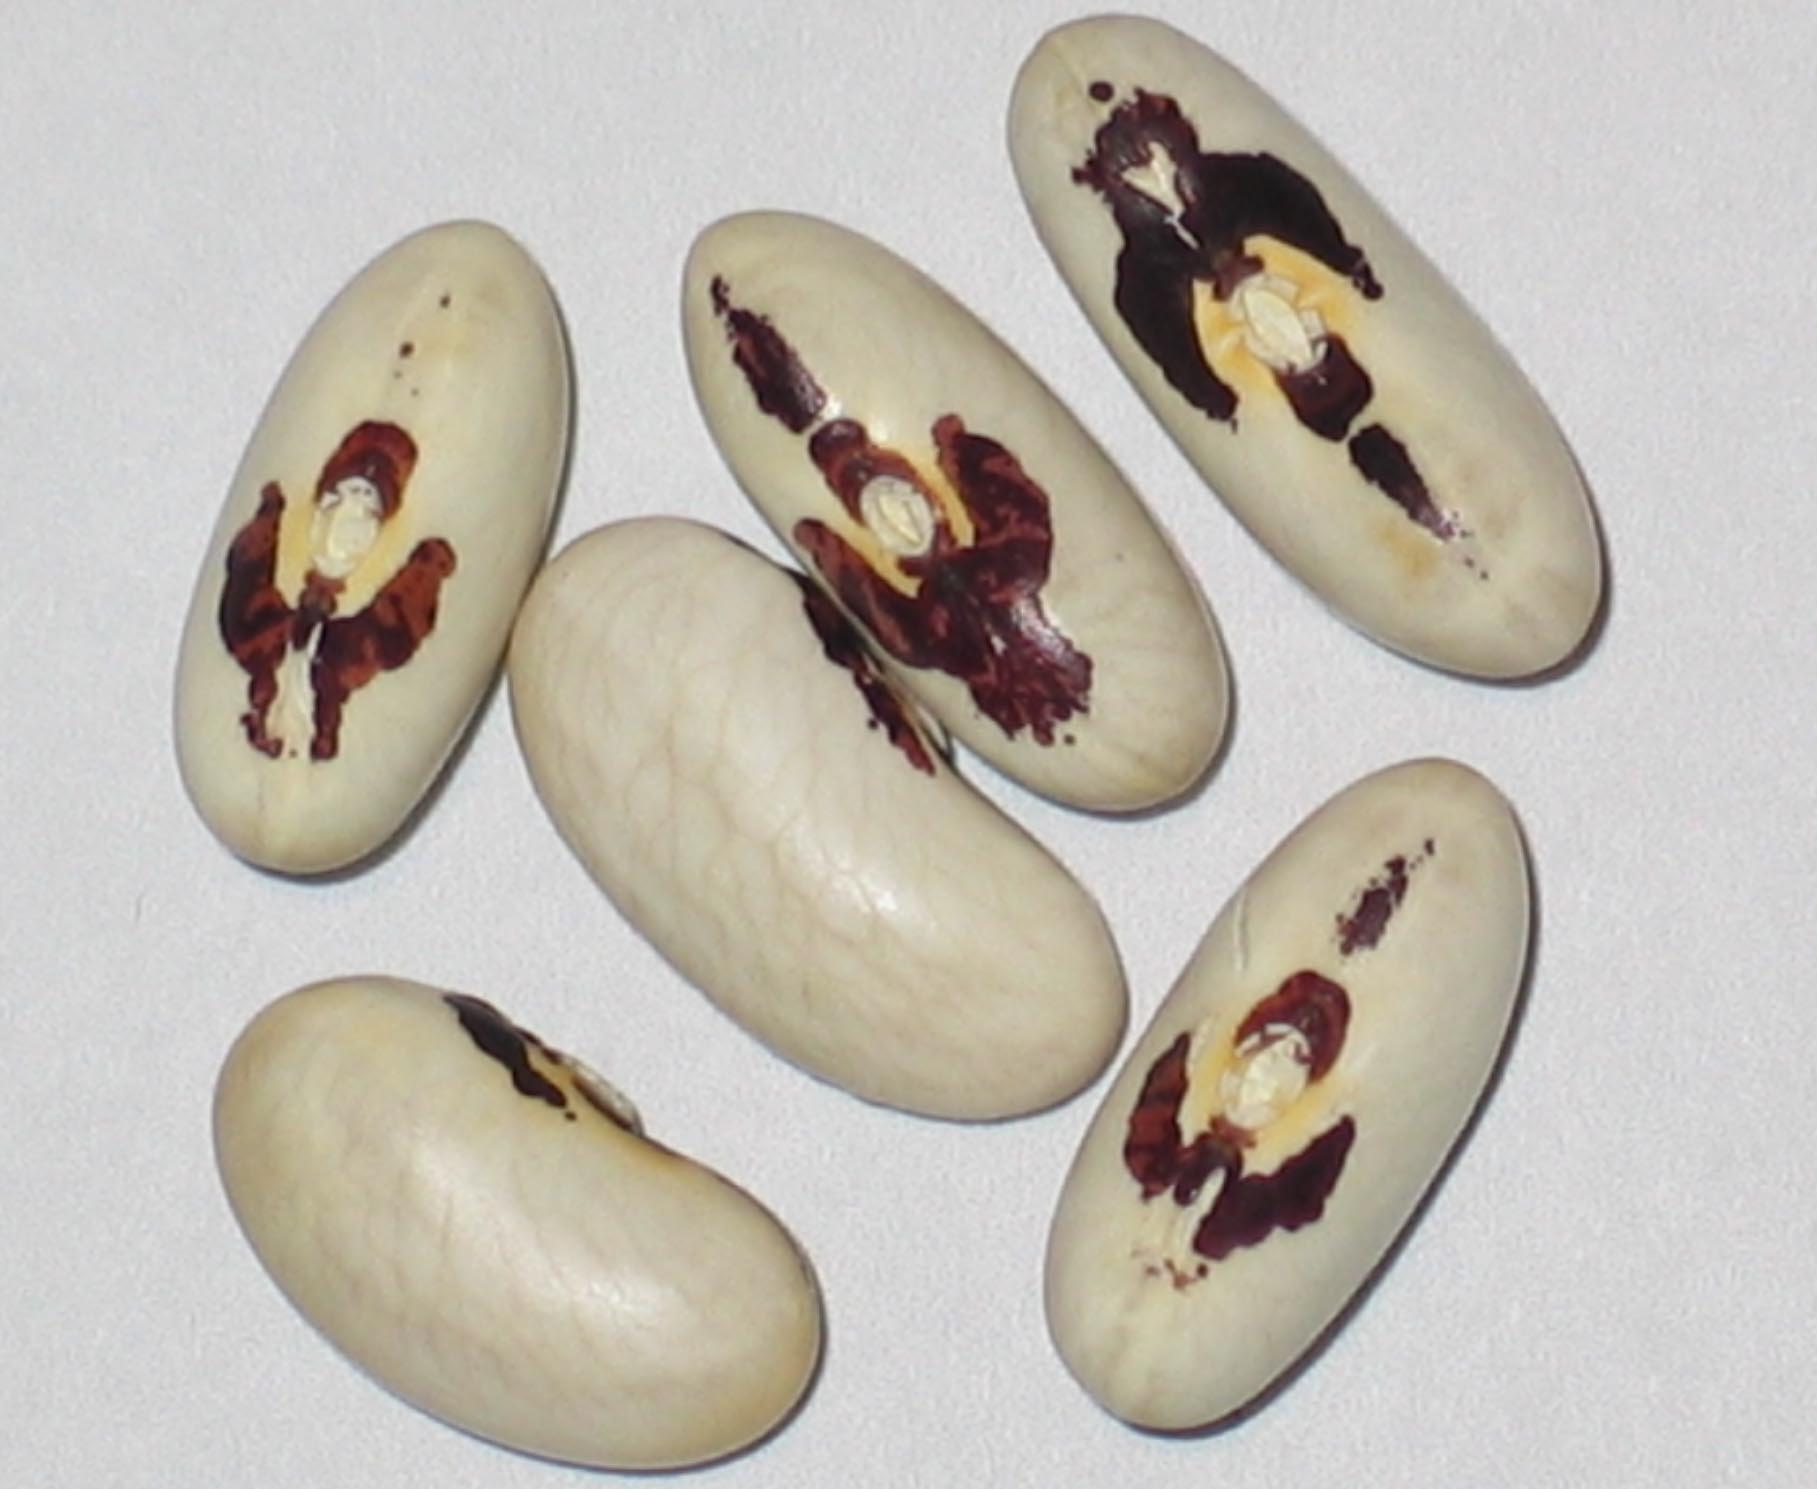 image of Algarrobo beans